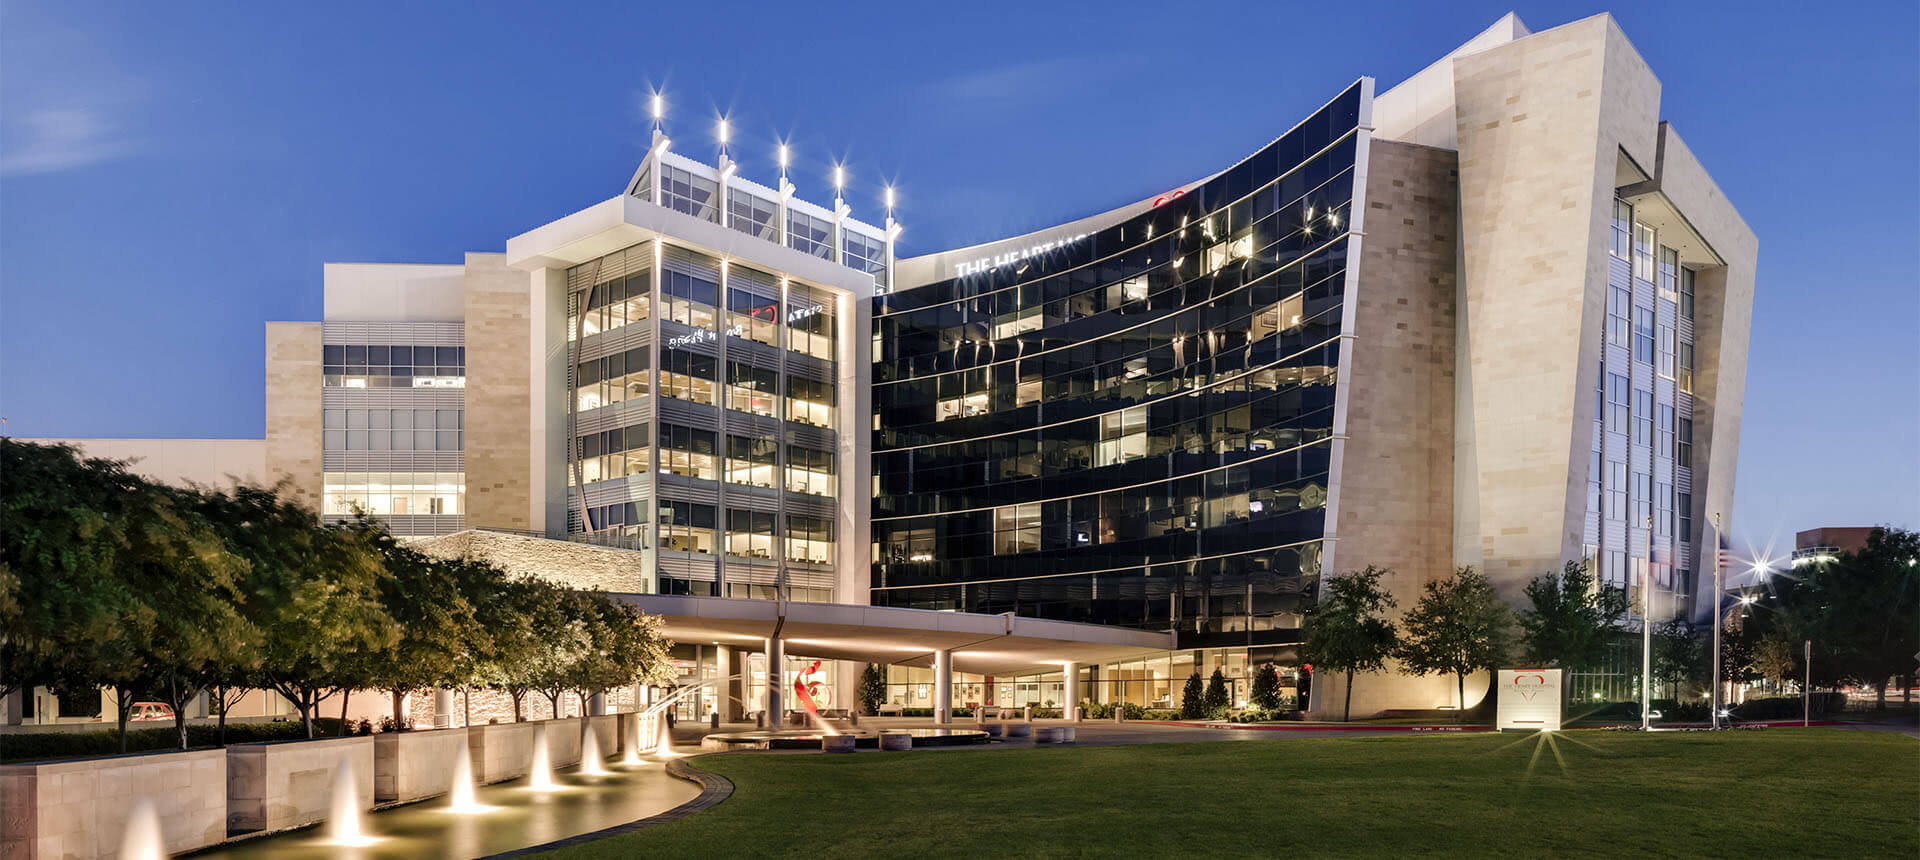 Baylor hospital in dallas texas / Front end engineers